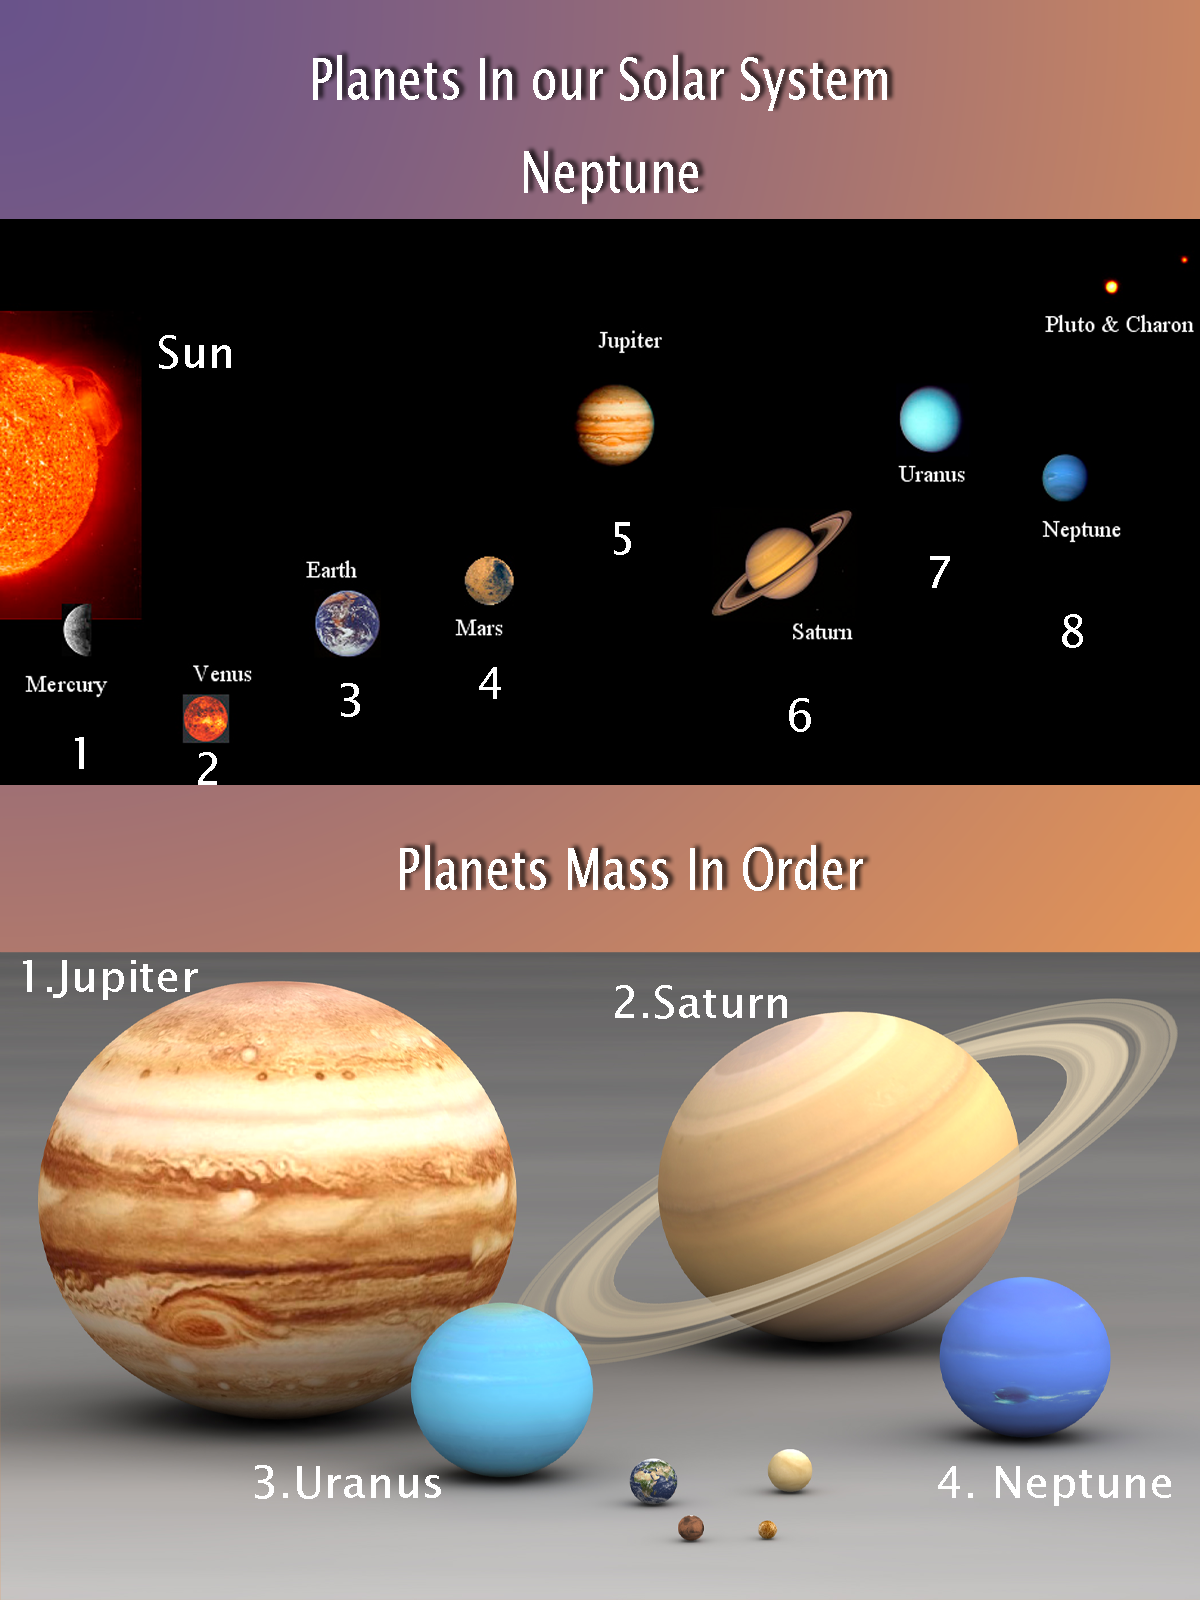 the inner and outer planets in our solar system universe - 736×981